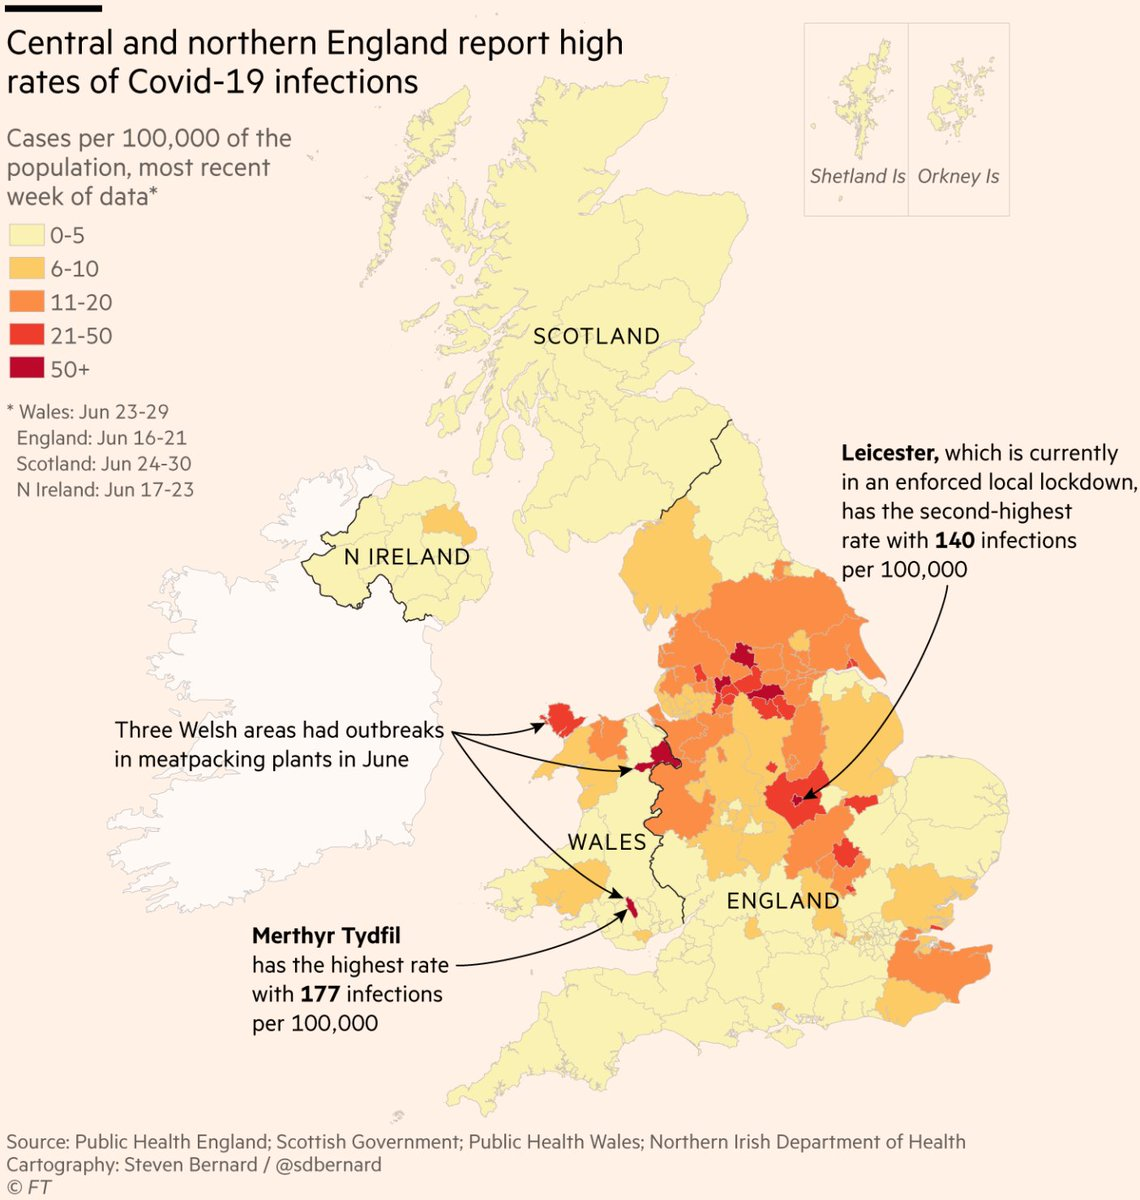 Prof Devi Sridhar On Twitter This Map Shows Still High Rates Of Covid In Parts Of Uk Even After 12 Weeks Of Lockdown Largely Wasted Delay Opening Pubs July 4th Support Local